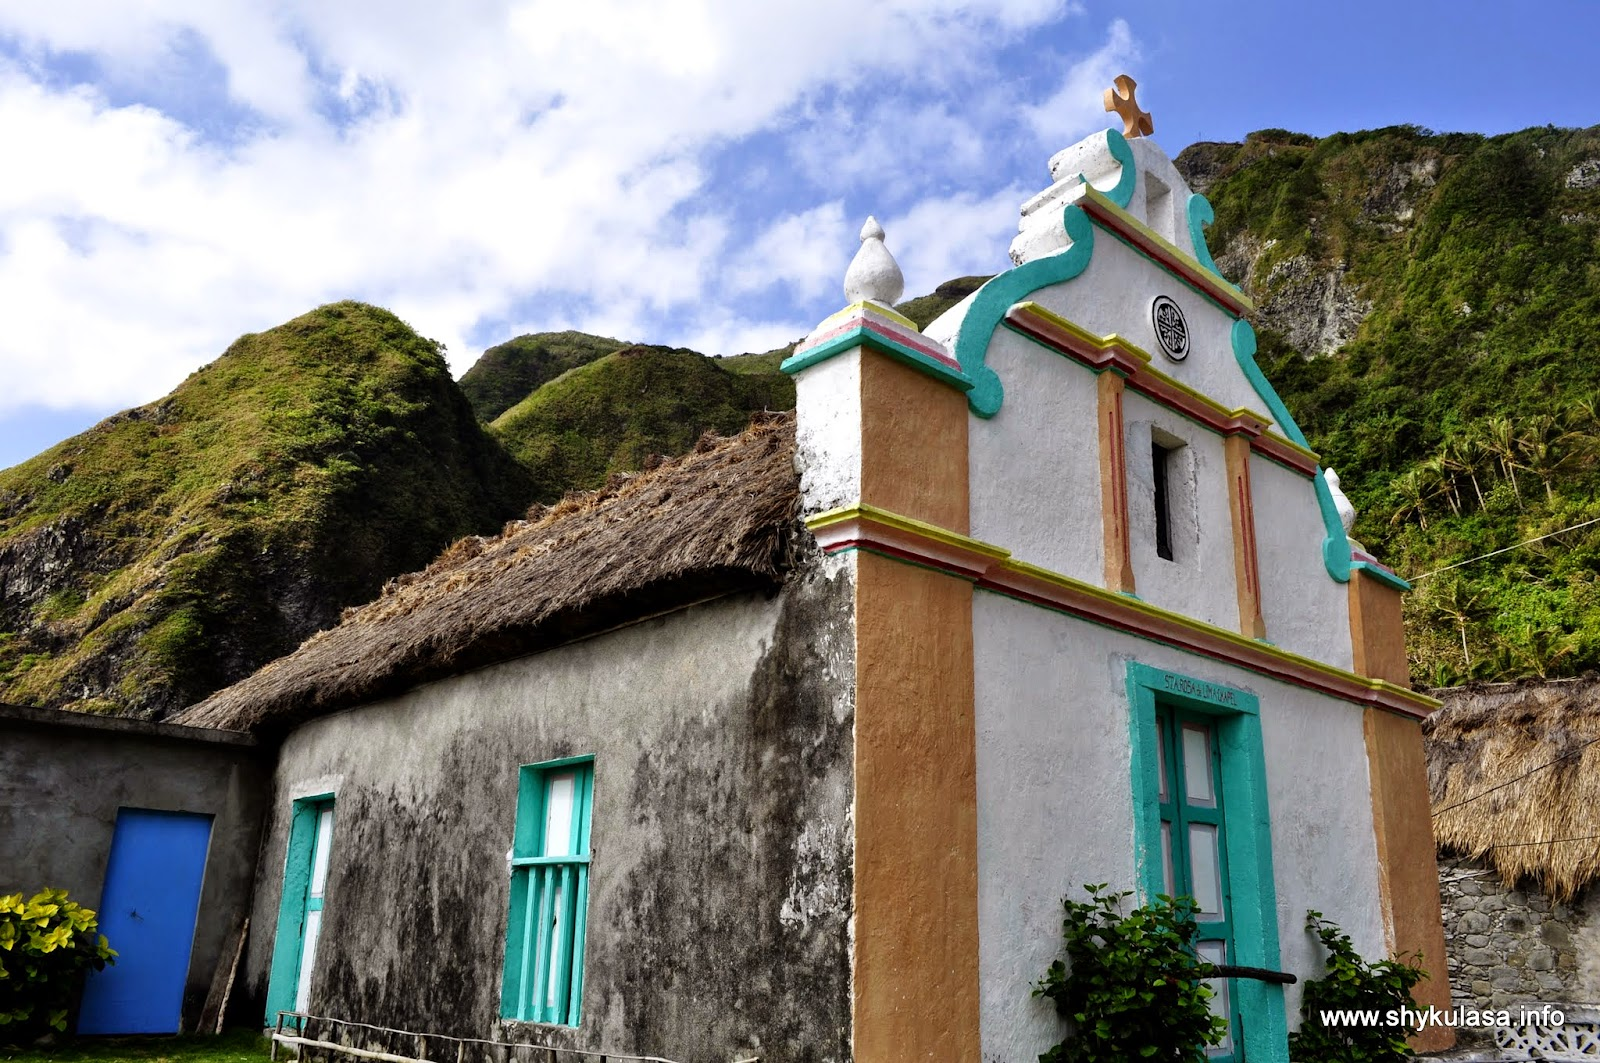 Chavayan Village CHURCH, SABTANG, BATANES